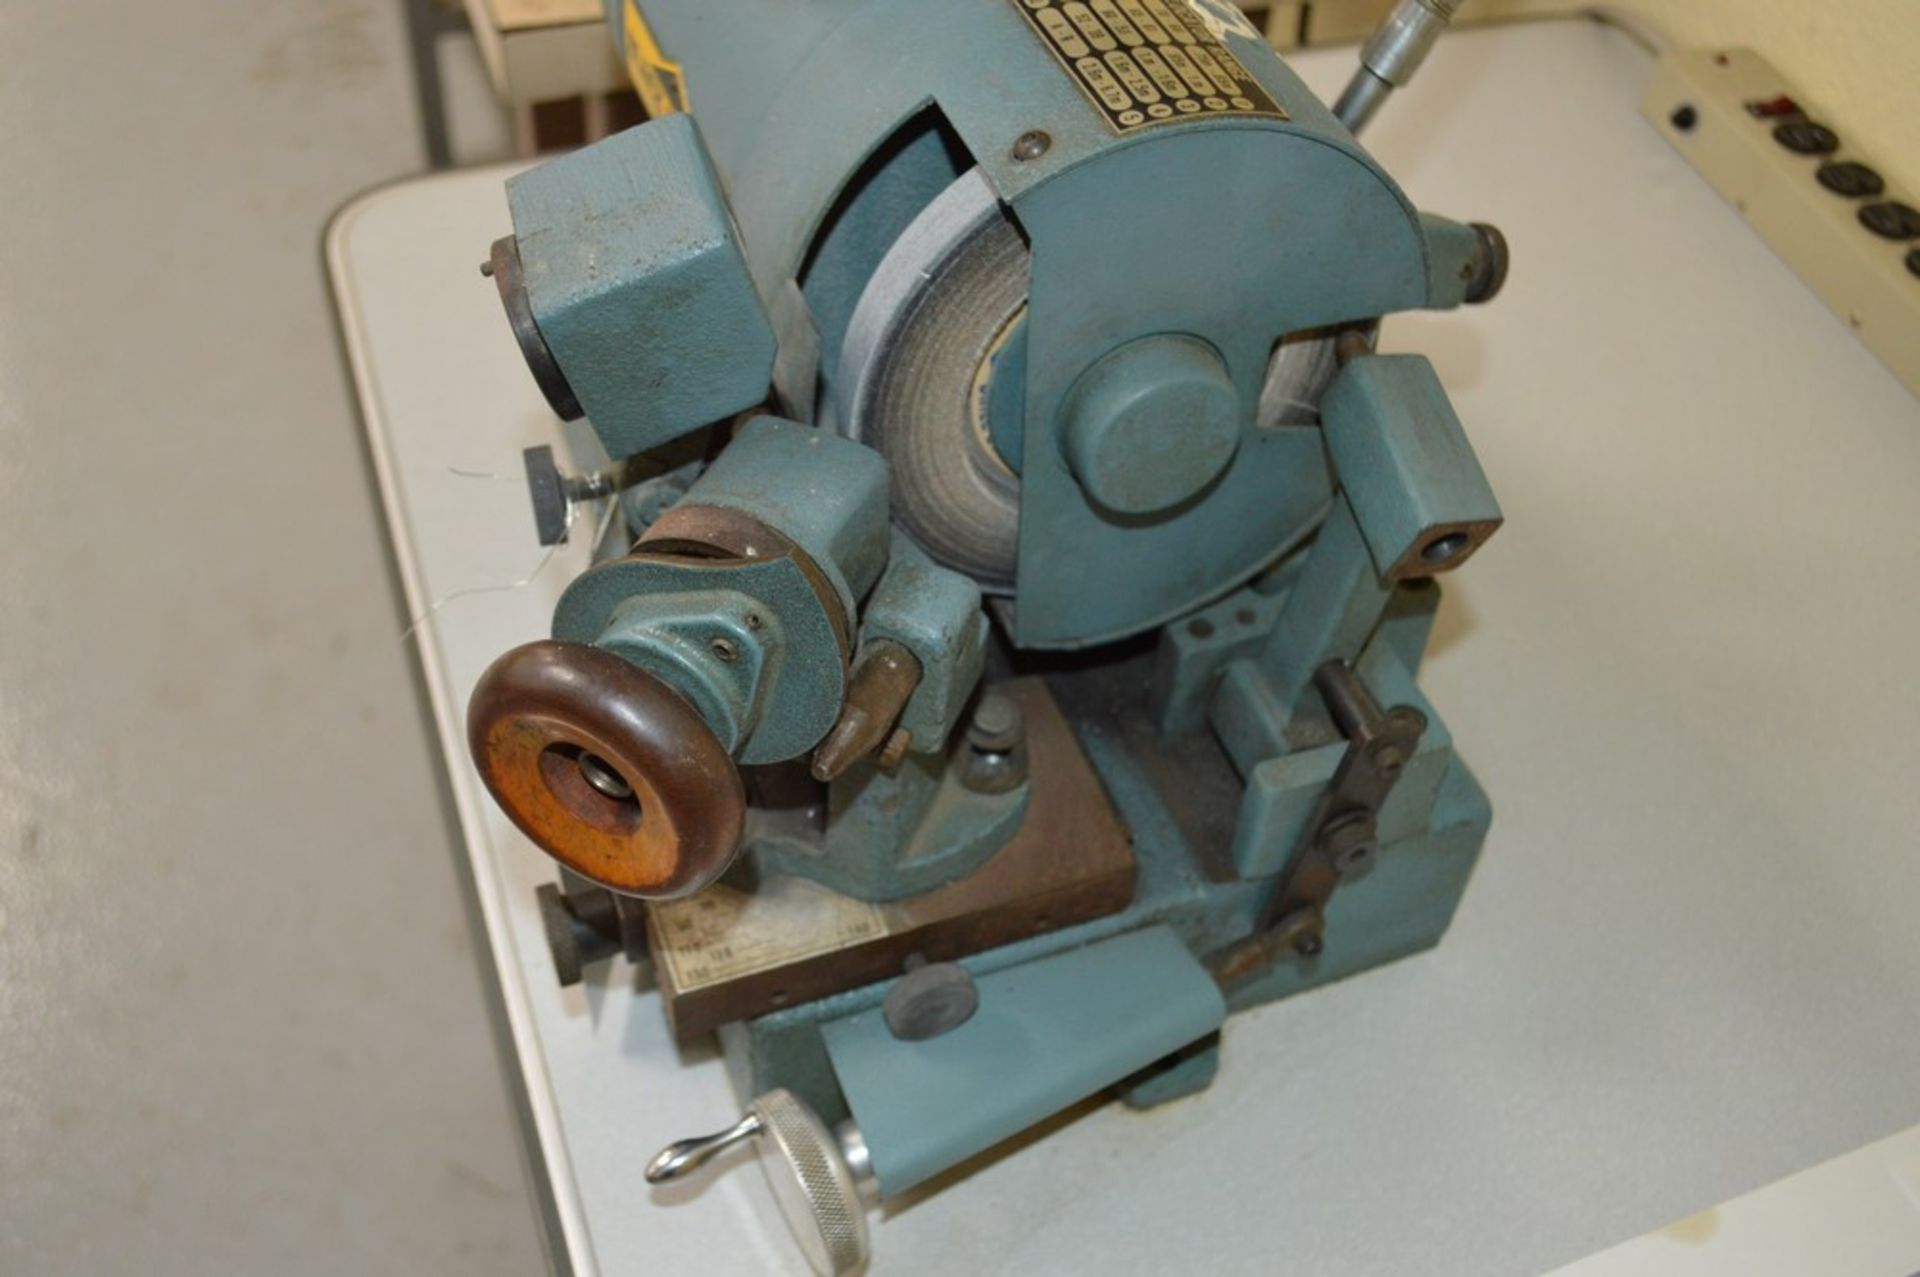 Black diamond precision drill grinder with 6 position tool changer and light - Image 3 of 7